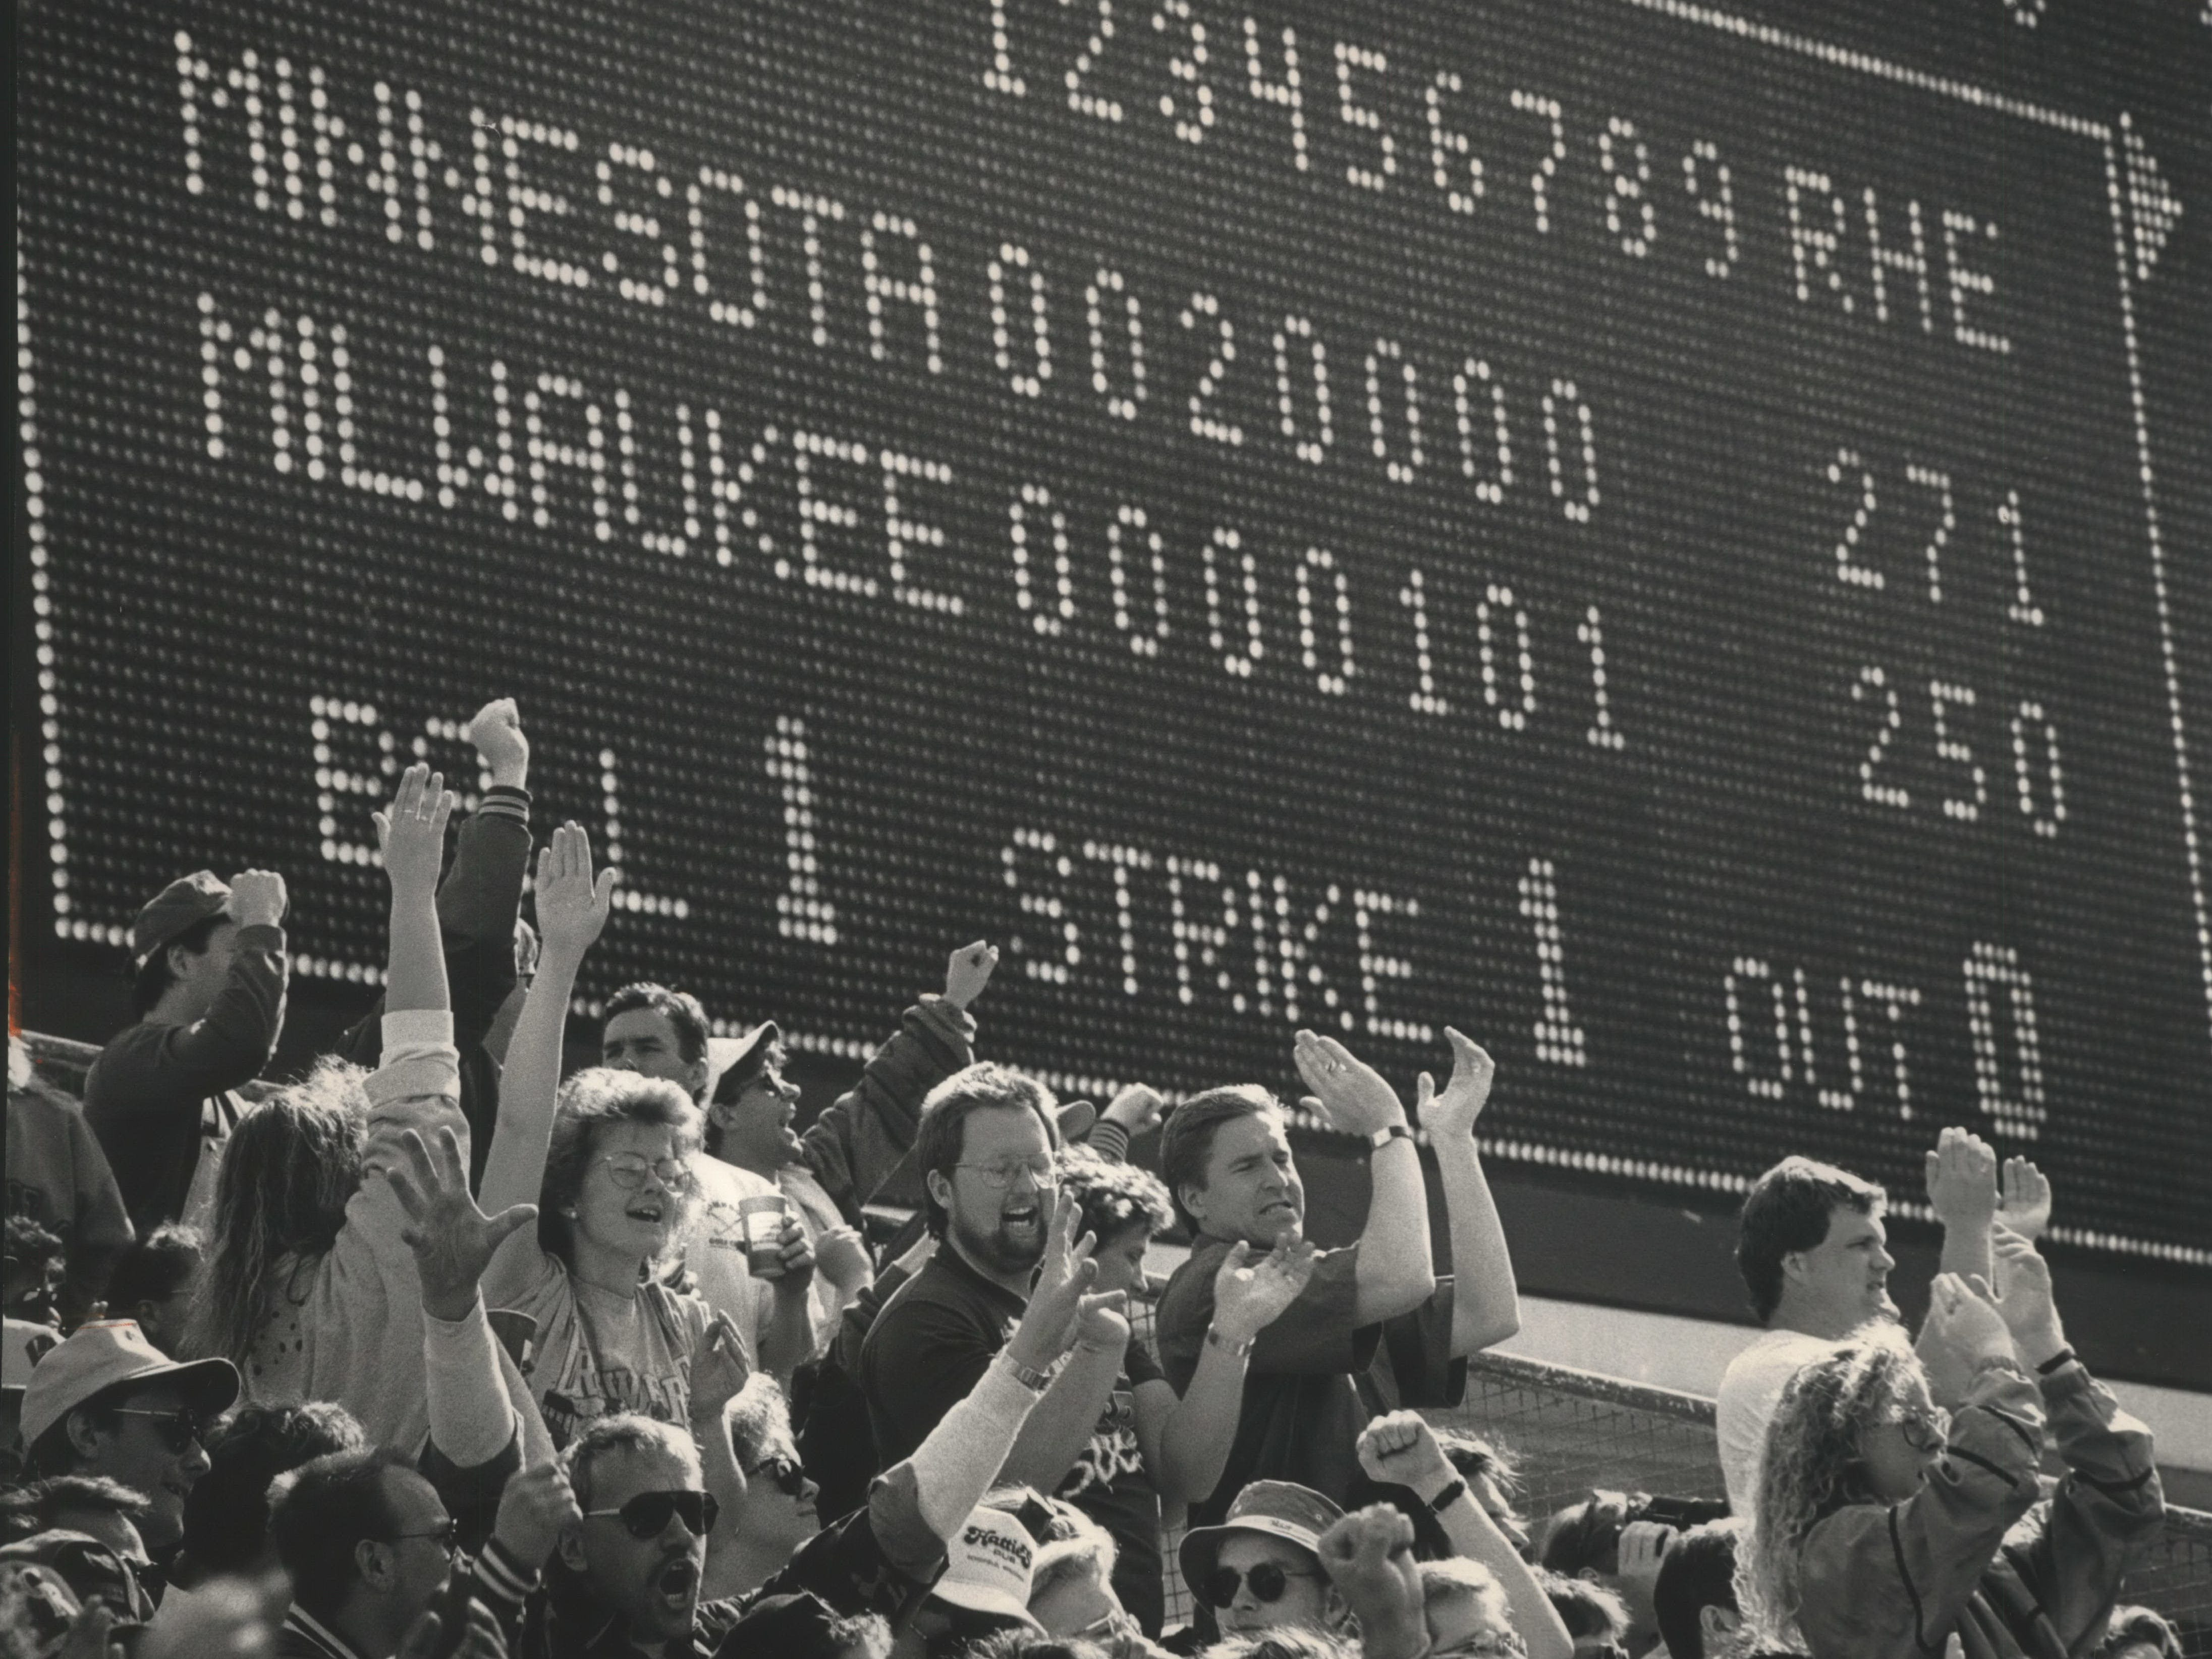 Fans in the bleachers cheer on the Milwaukee Brewers after they tie the Minnesota Twins at the home opener day of the 1992 season at County Stadium on April 6, 1992. Unfortunately, the Twins came back to win, 4-2. This photo was published in the April 7, 1992, Milwaukee Journal.